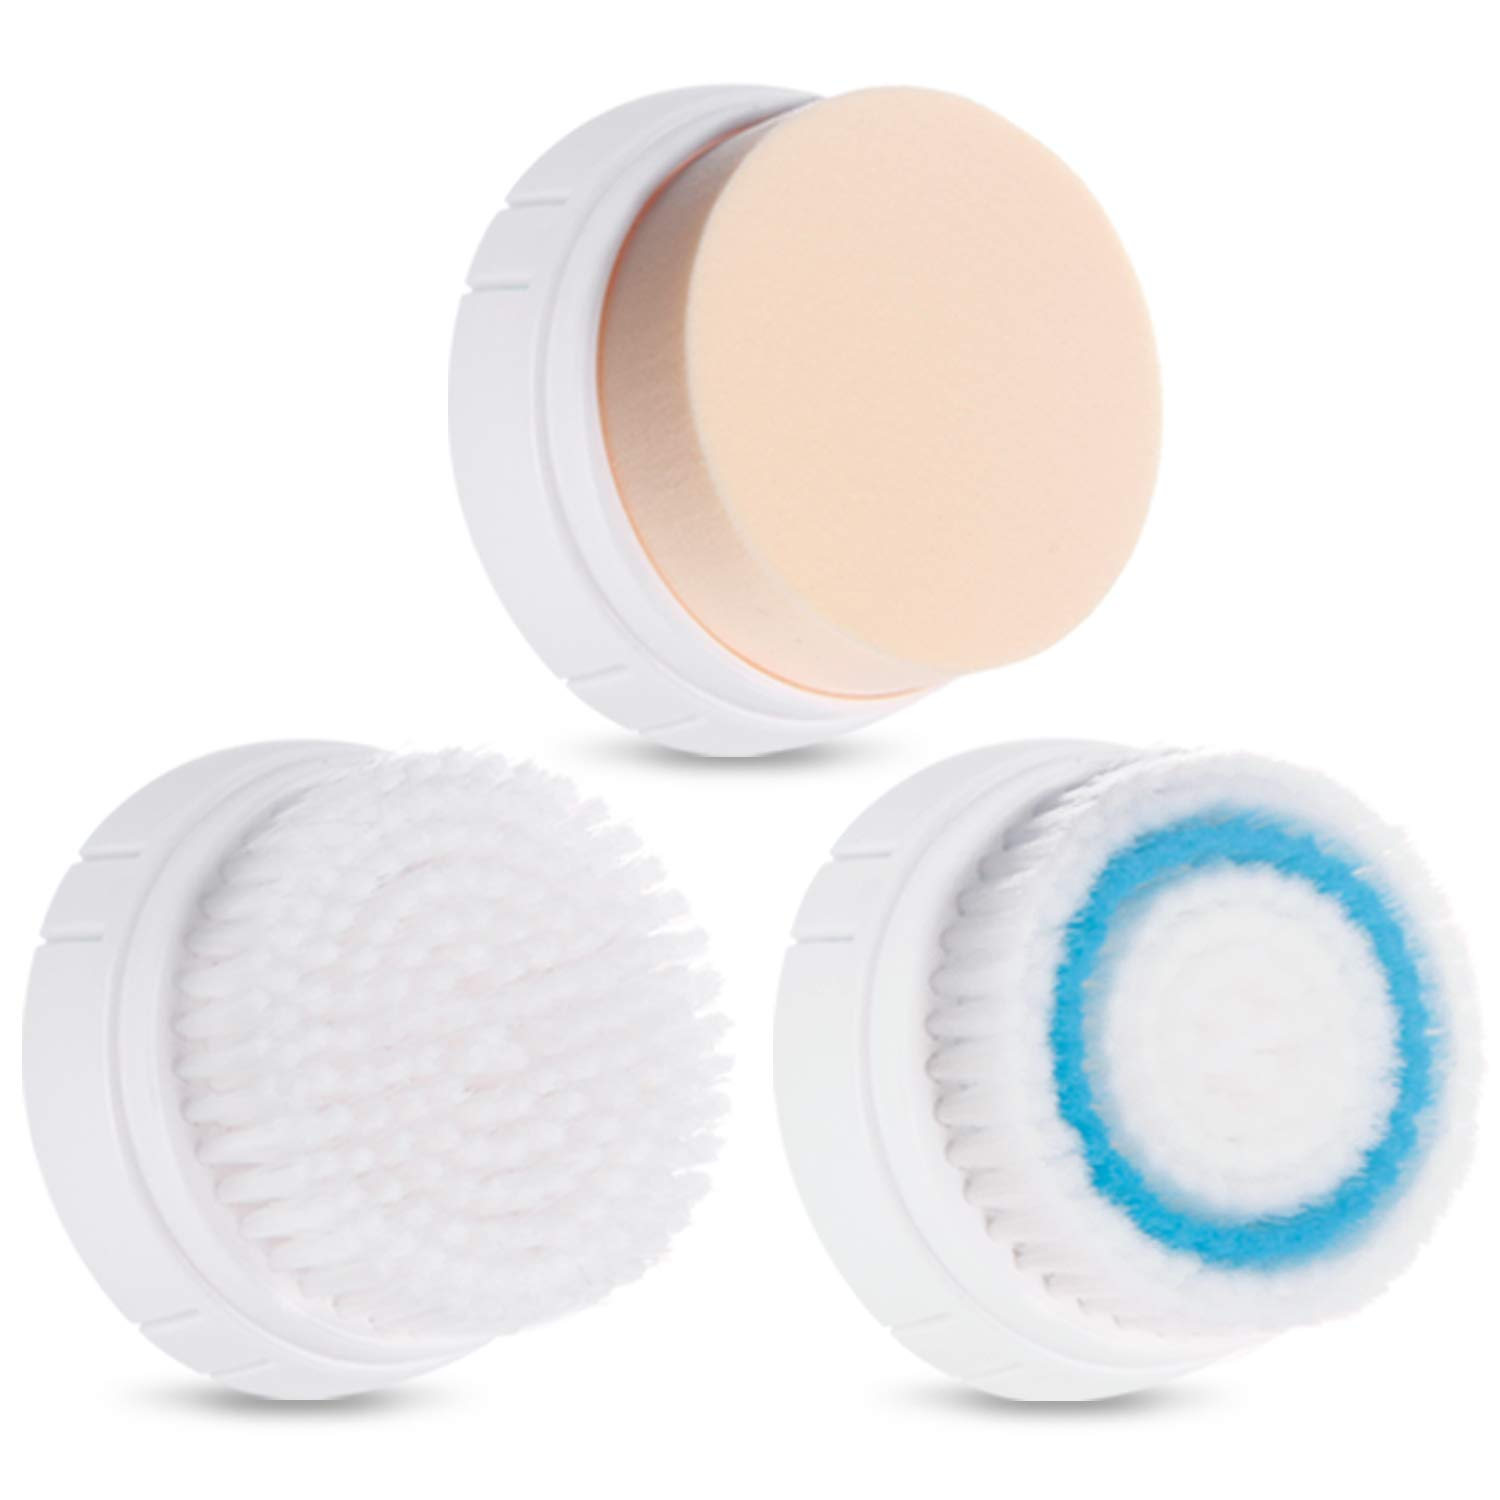 3 PCS Facial Cleansing Brush Heads Replacements for HEYFYV 4 in 1 Sonic Waterproof Powered Face Cleansing Brush